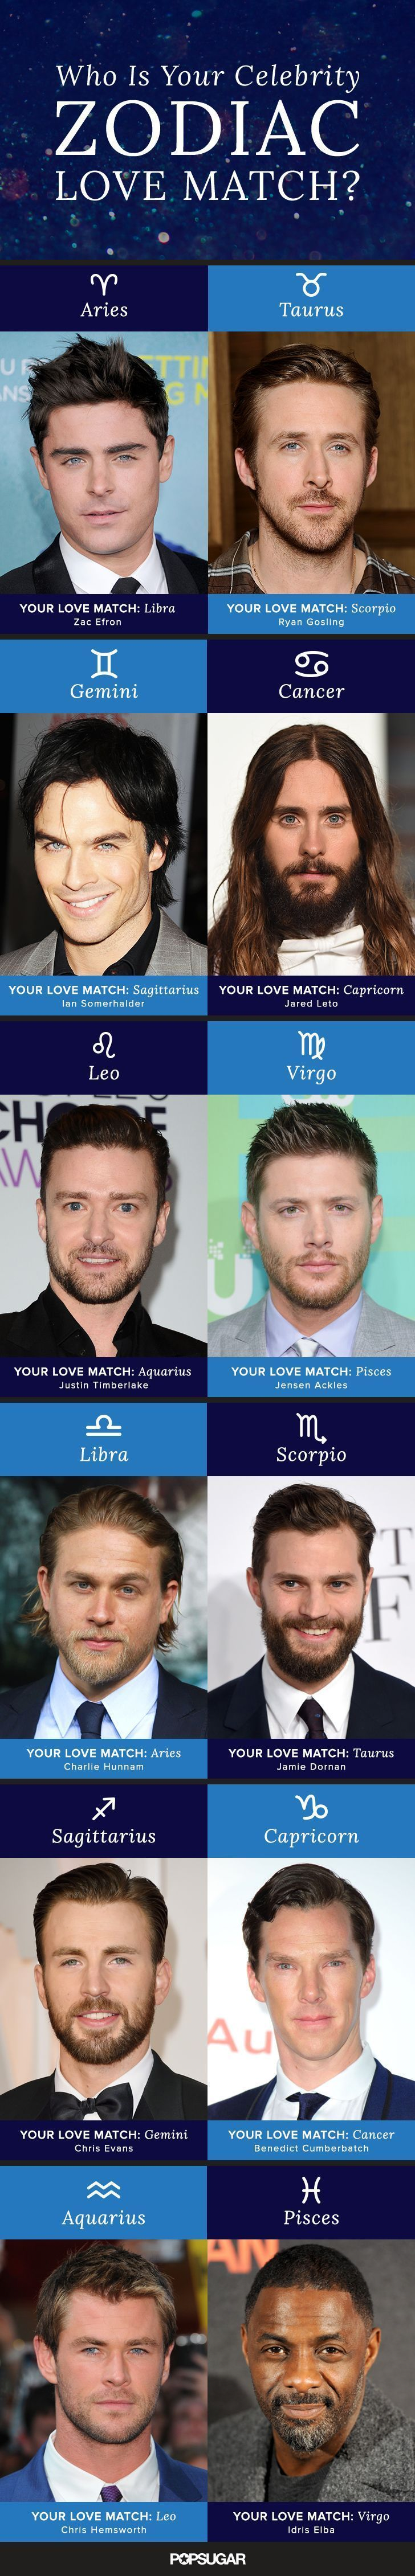 Your perfect celebrity match quiz